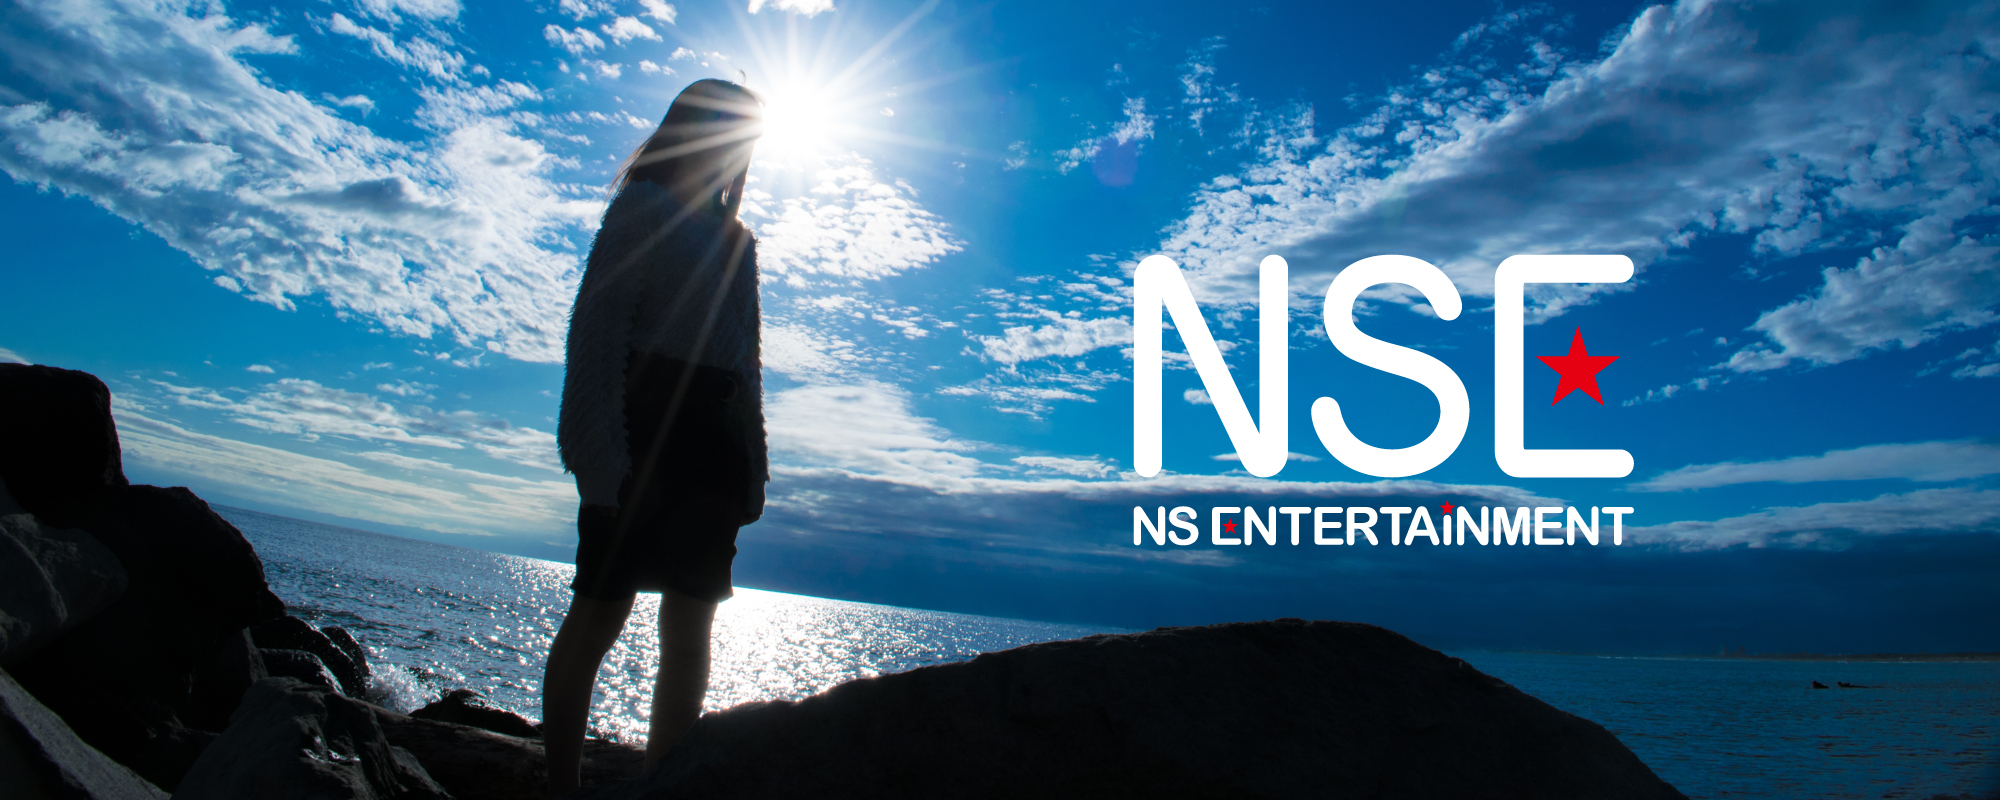 NS ENTERTAINMENT